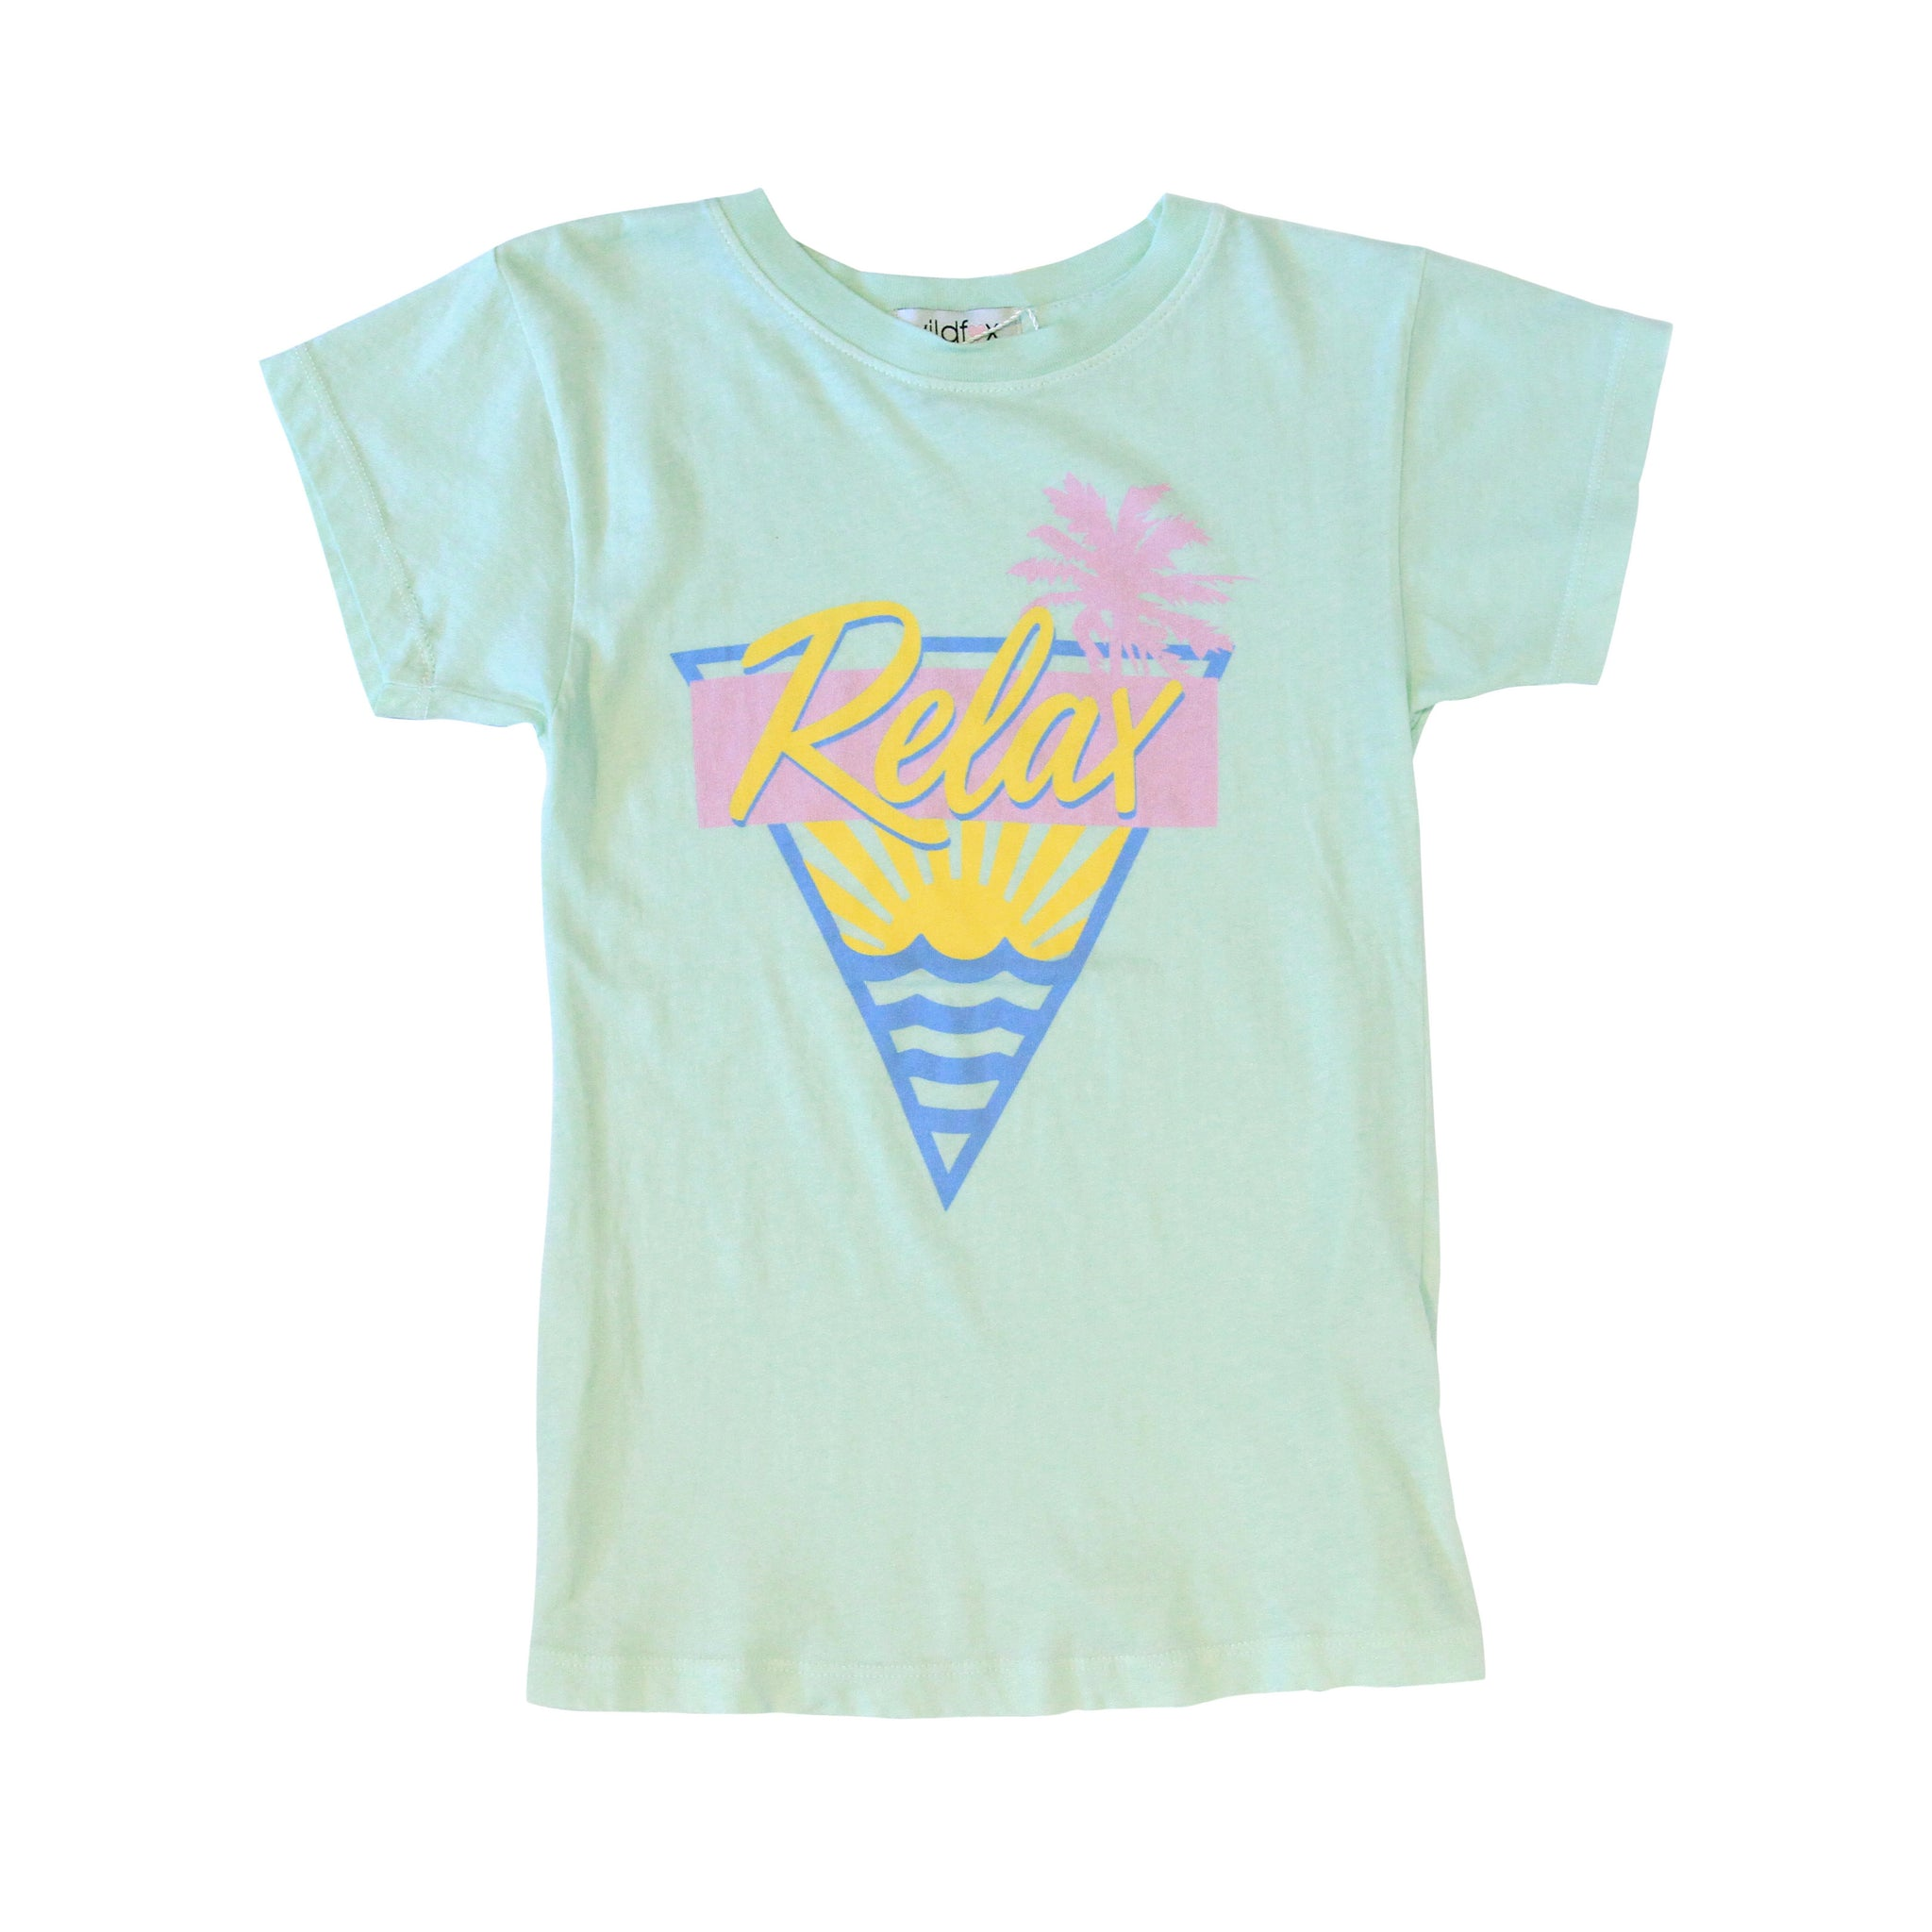 Relax Mint Tee